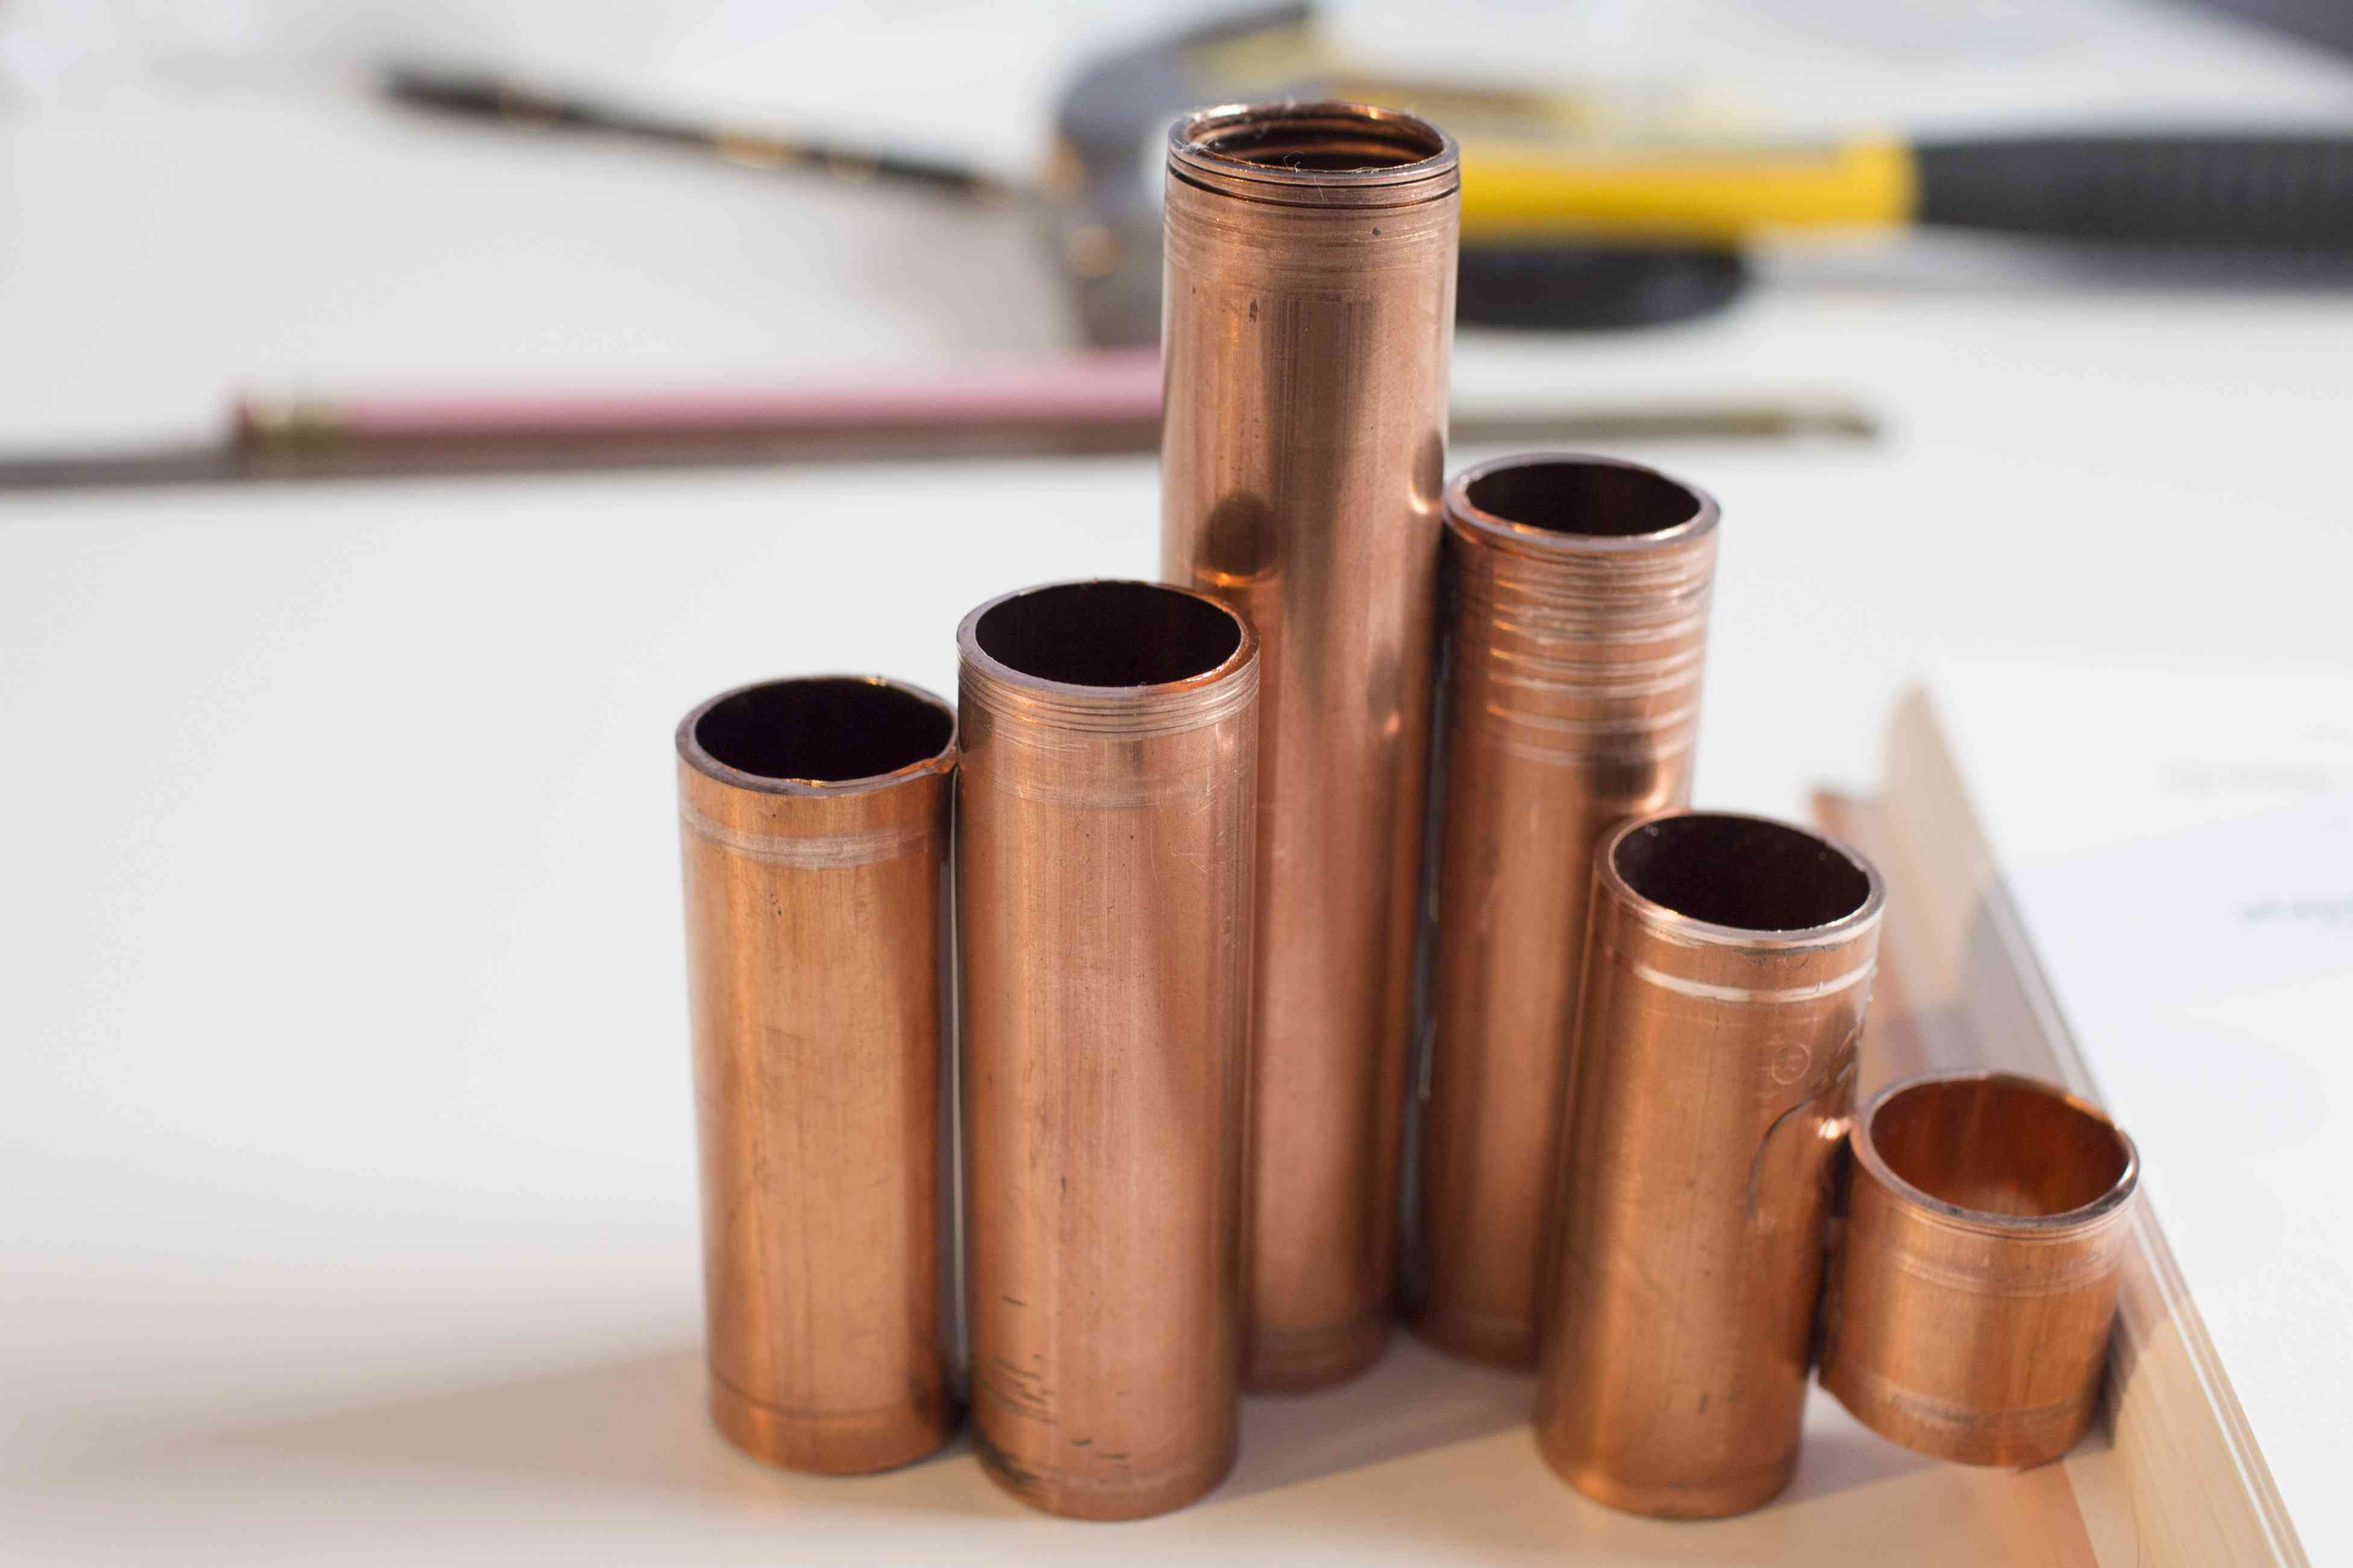 A finished candleholder made with copper pipe pieces and craft adhesive